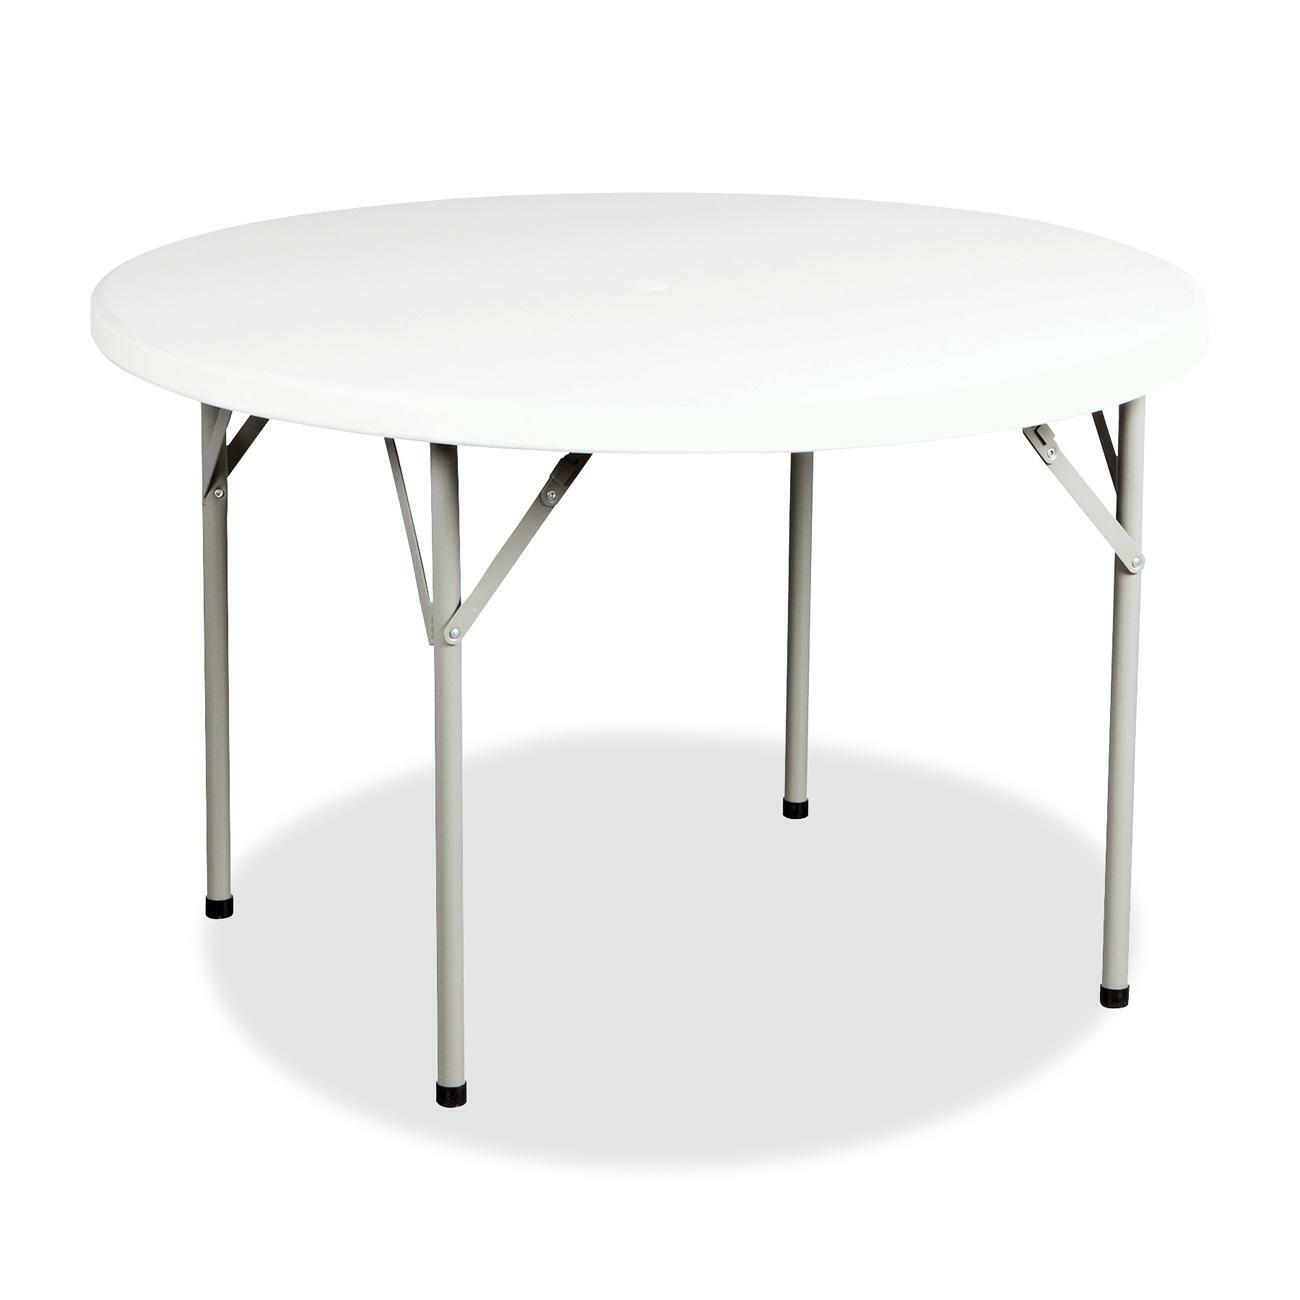 Versatile, Lightweight Multipurpose Folding Table Features A  Scratch Resistant, Weatherproof, High Impact, Polyethylene Top And Durable  Steel Legs For ...